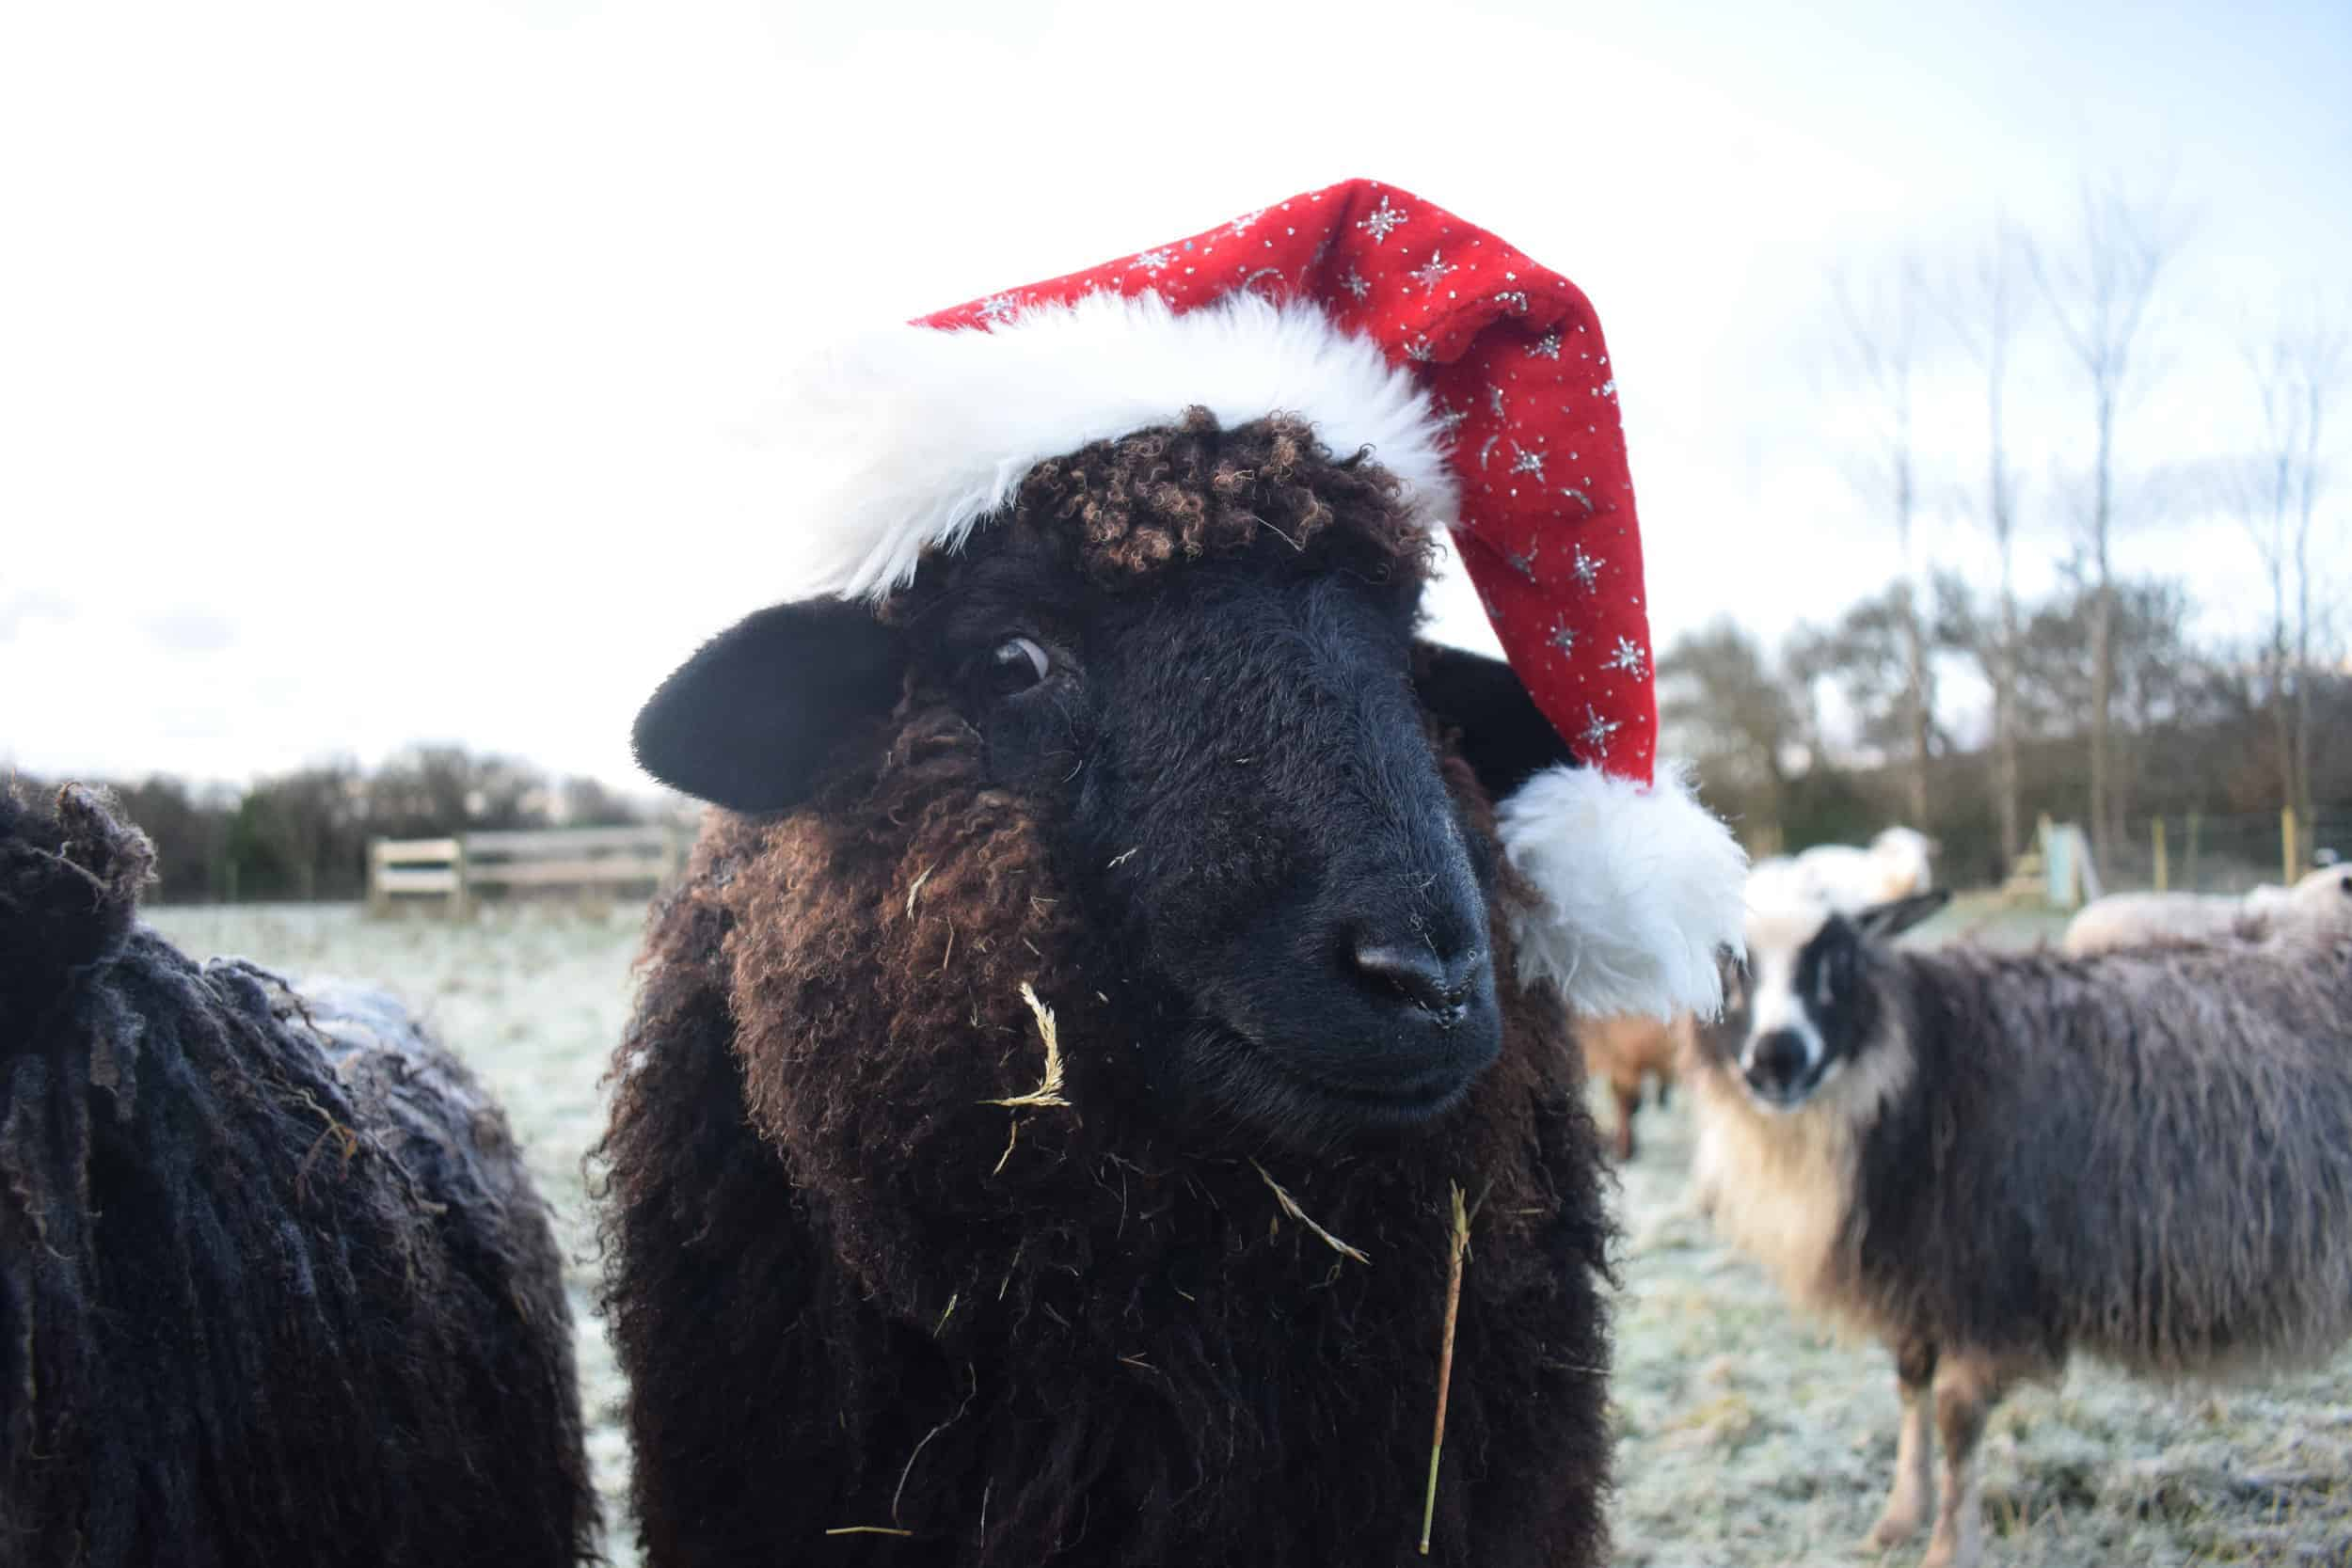 Spot santa hat xmas valais blacknose cross zwables texel sheep pet sheep ethical sustainable wool gifts patchwork sheep black 2